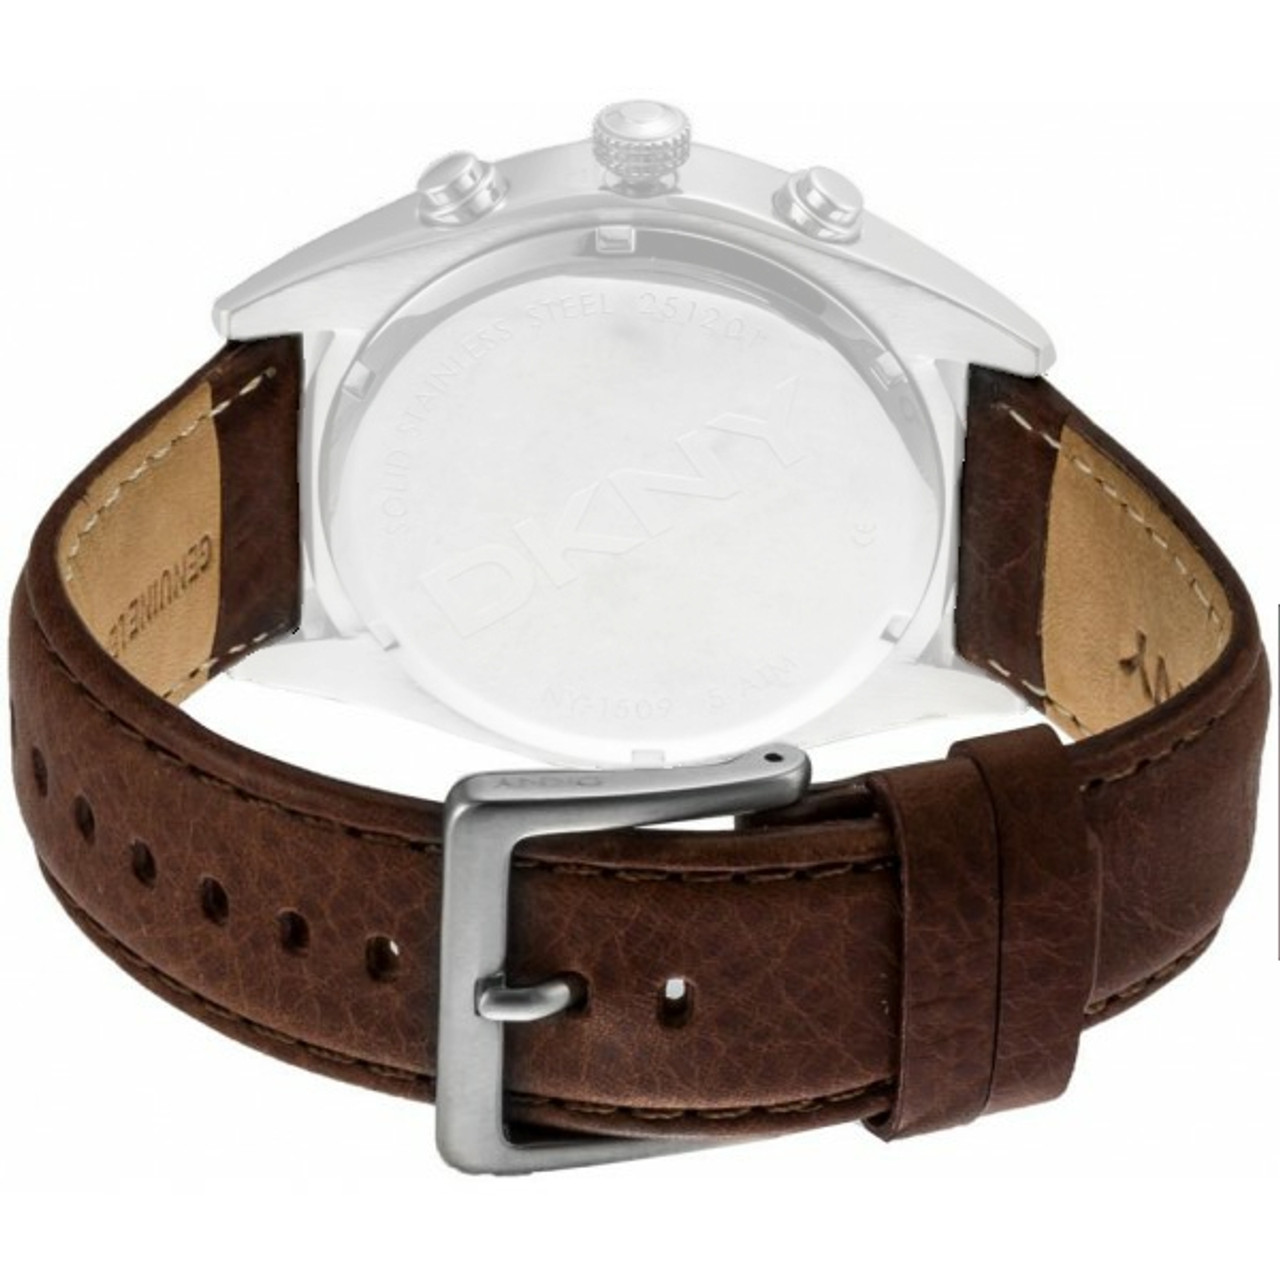 57f28621e DKNY Watch Replacement Brown Leather Strap For NY1509